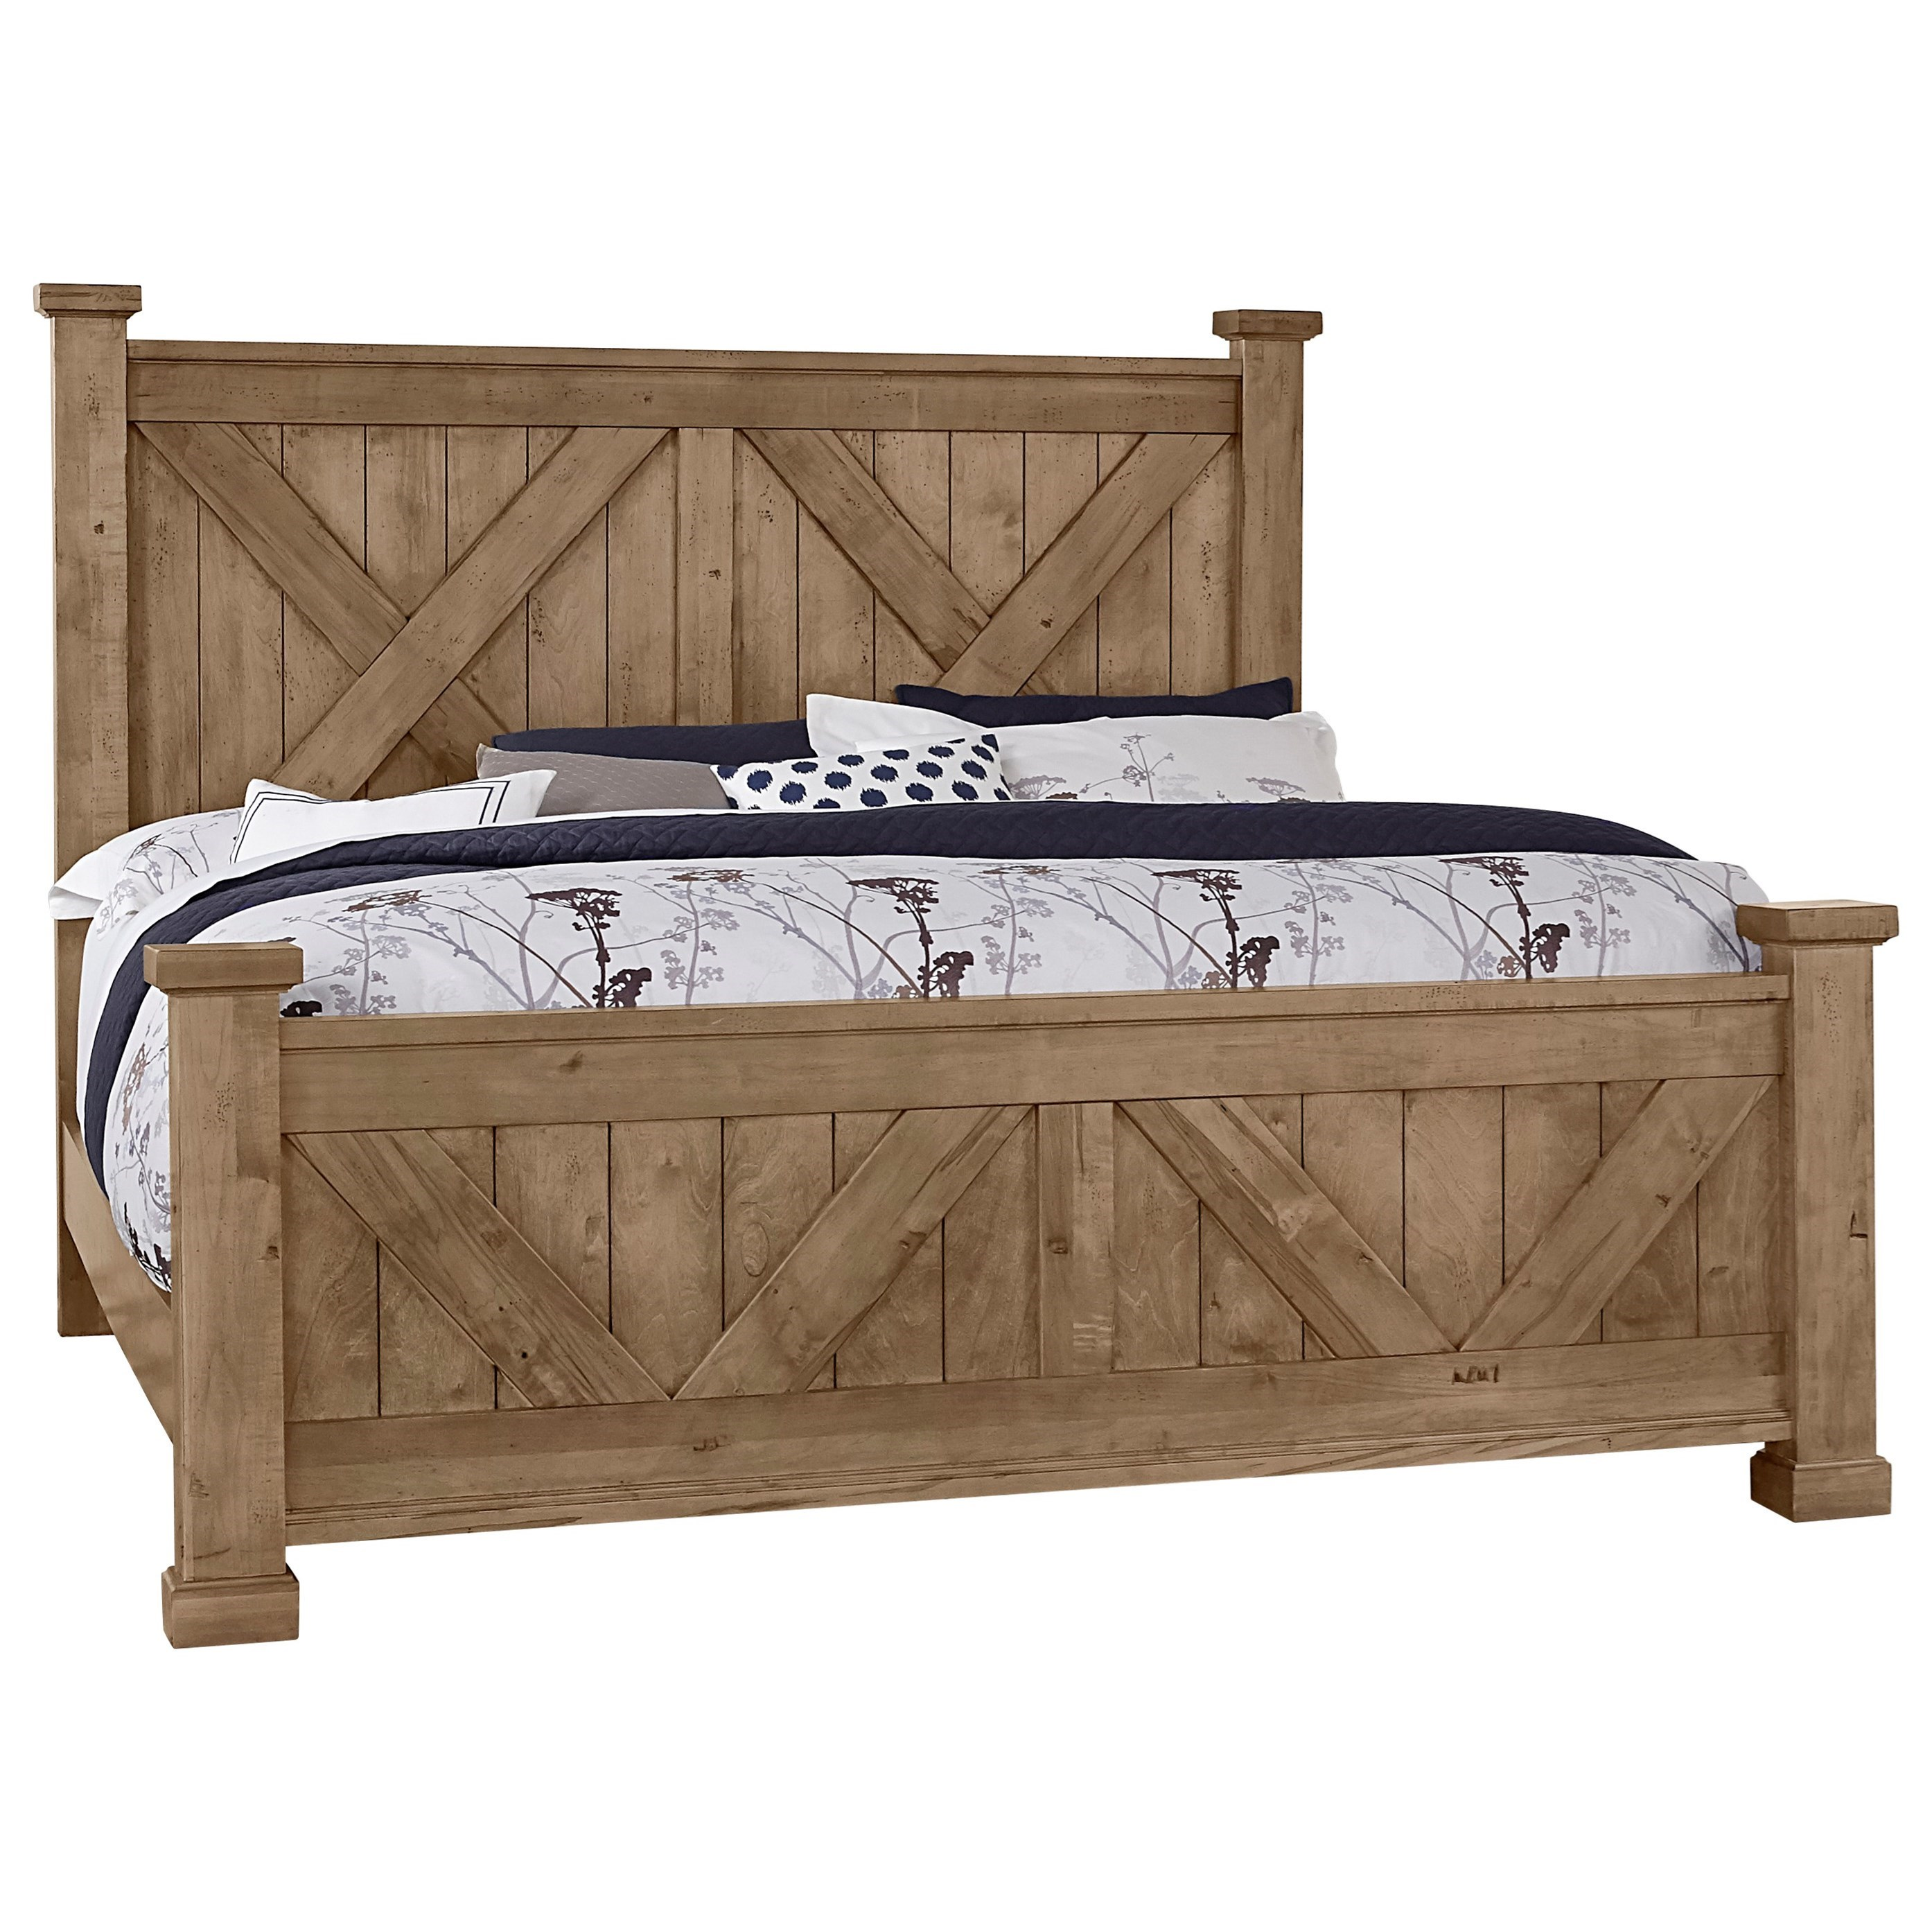 Cool Rustic King Barndoor X Bed by Artisan & Post at Rooms and Rest